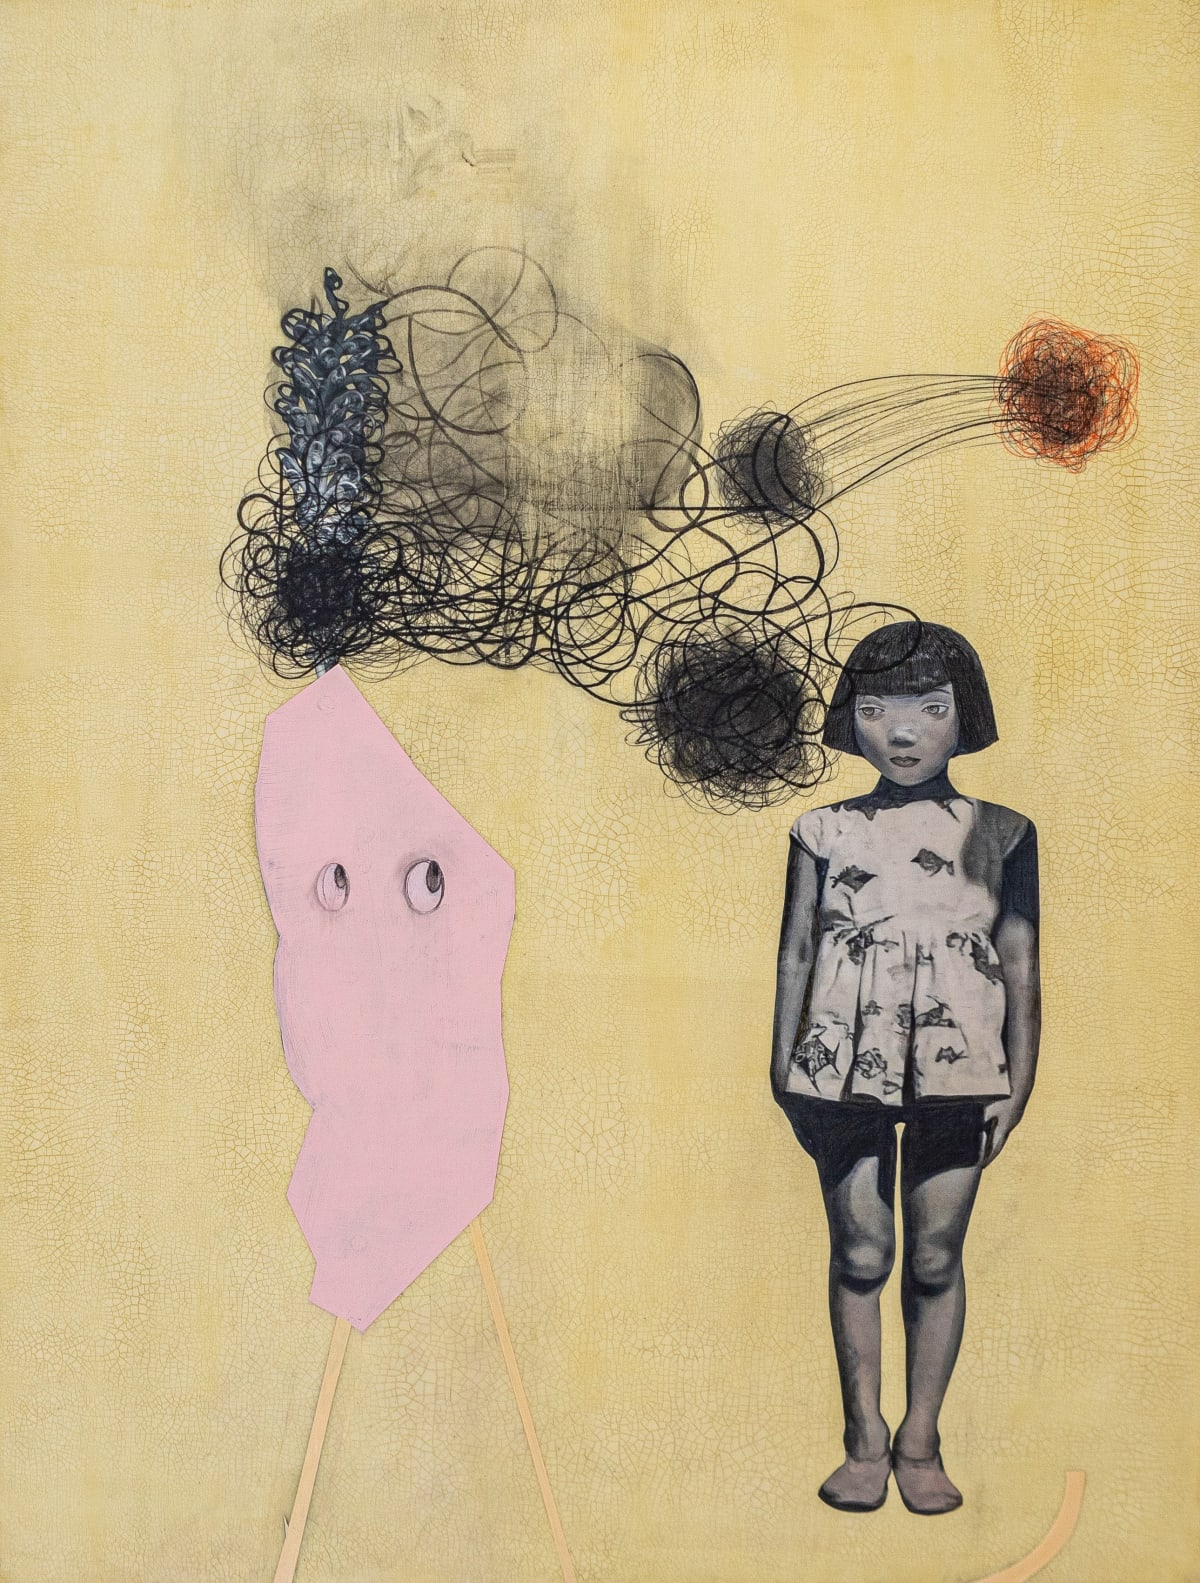 """'Pink Cotton Candy and Peyton' (2020) 50""""x38""""x1.5"""" mixed media. Courtesy of Kaoru Mansour and Launch LA"""